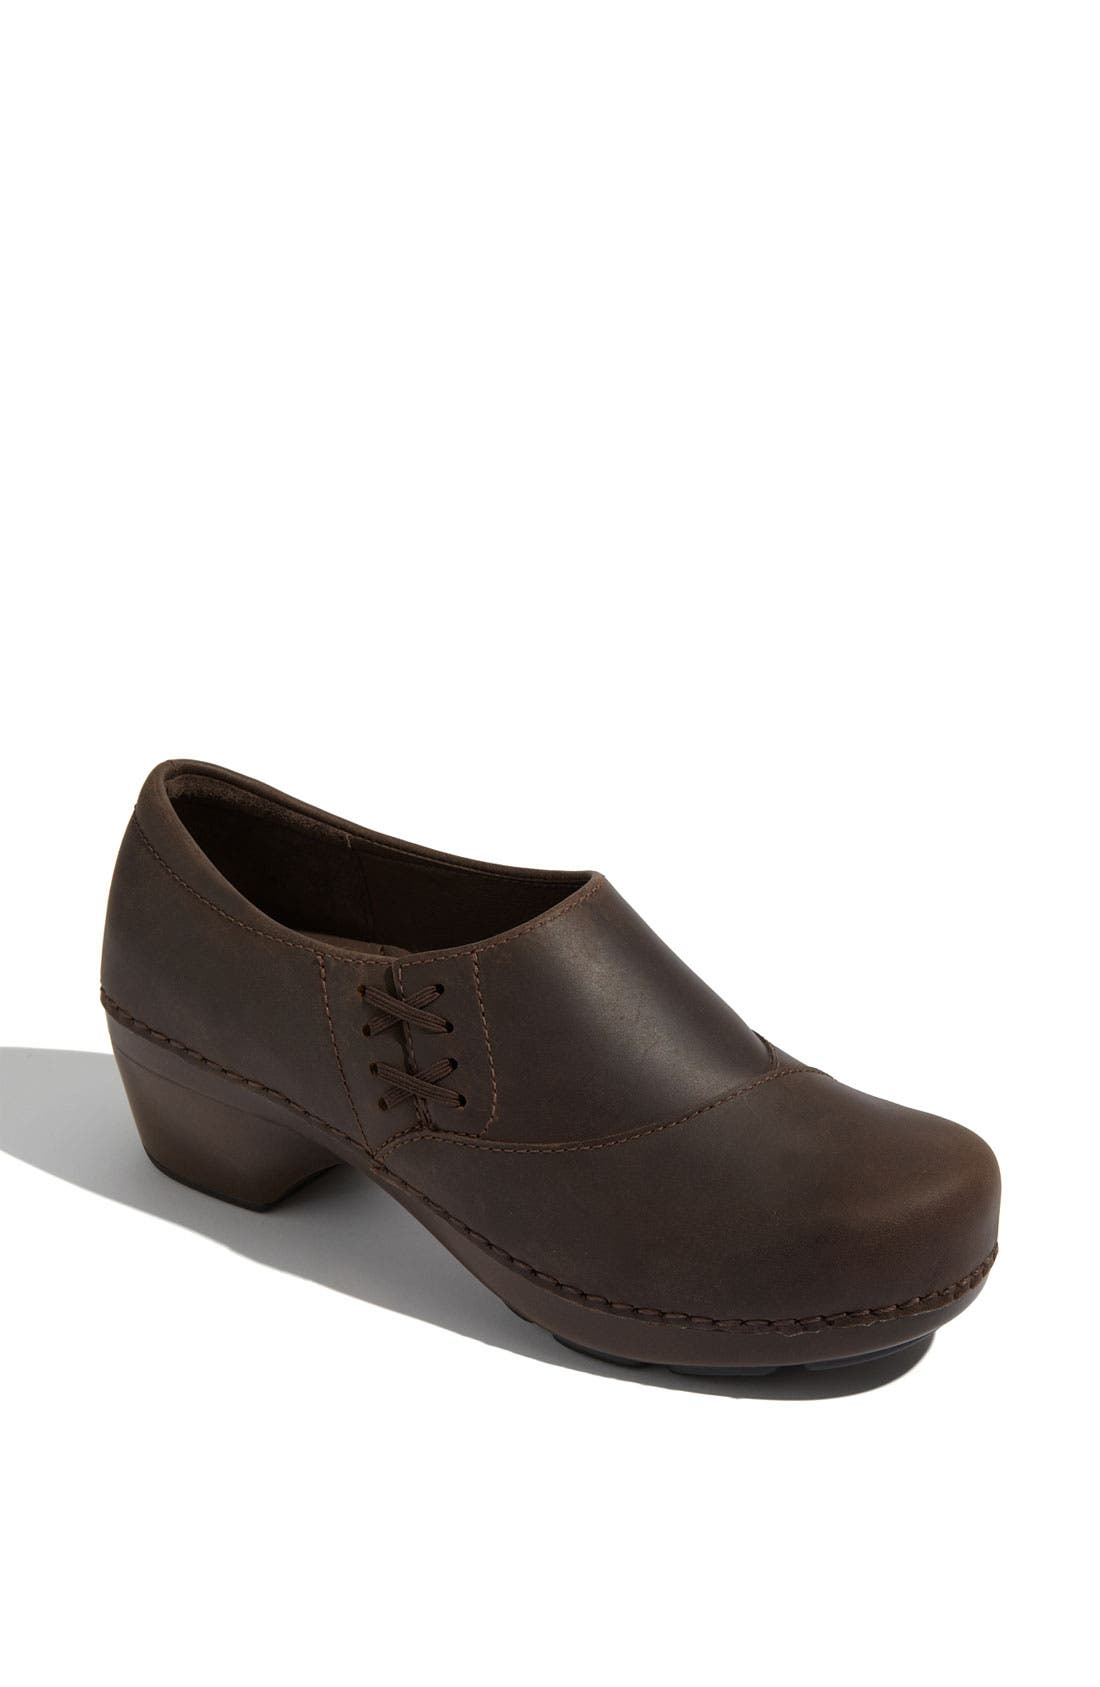 Alternate Image 1 Selected - Dansko 'Stacie' Clog